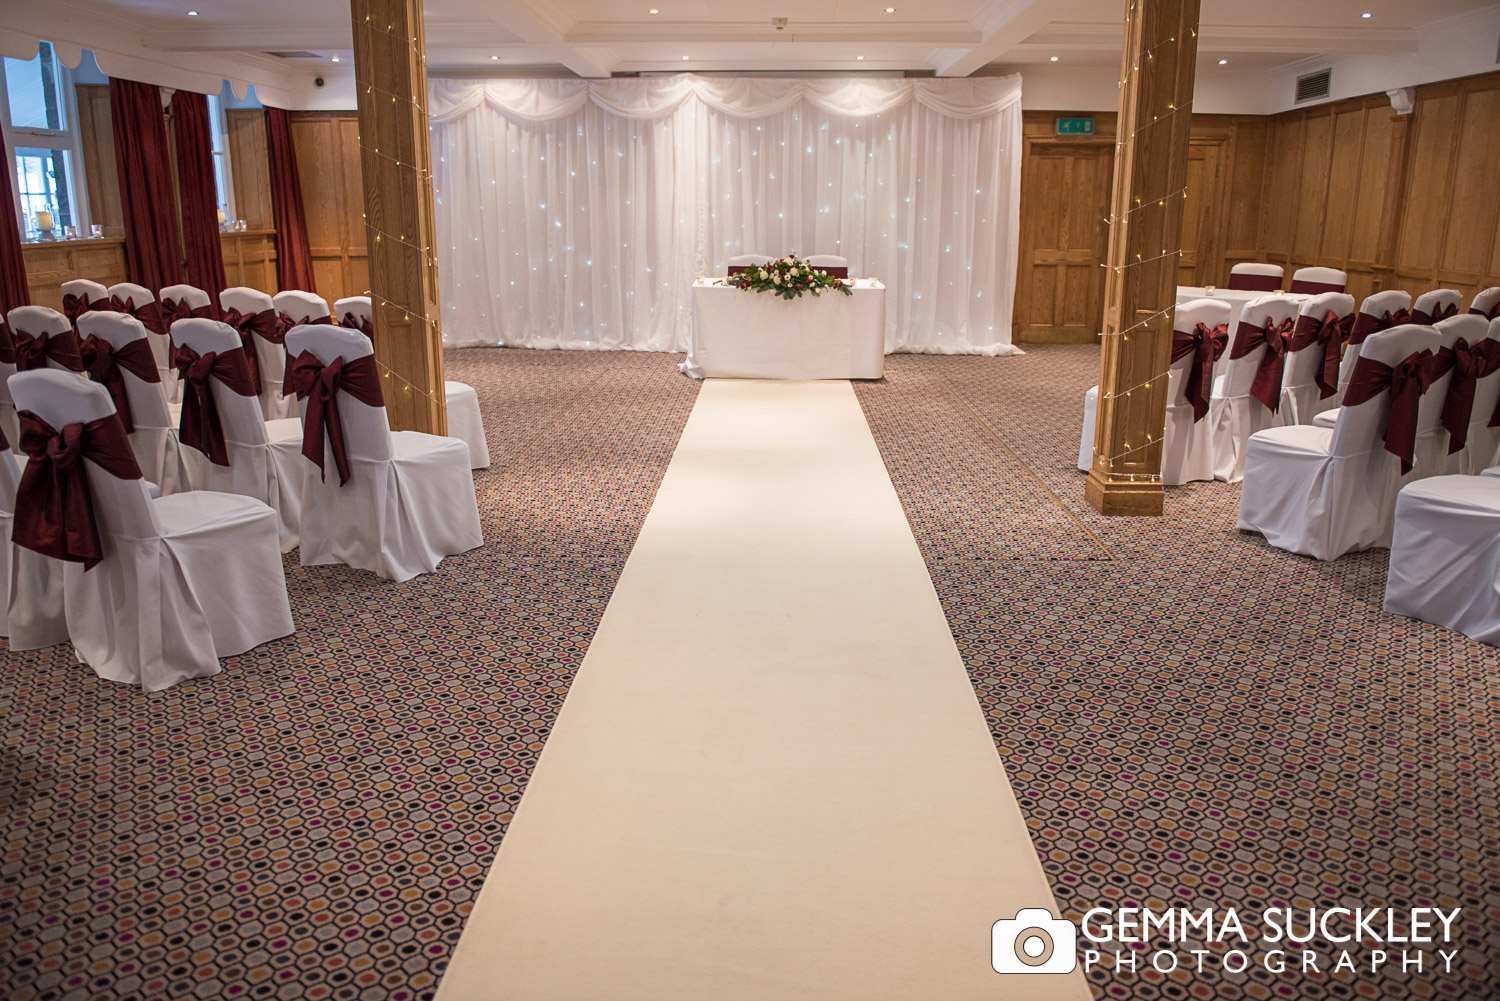 The wedding ceremony room at The Devonshire Arm, Bolton Abbey